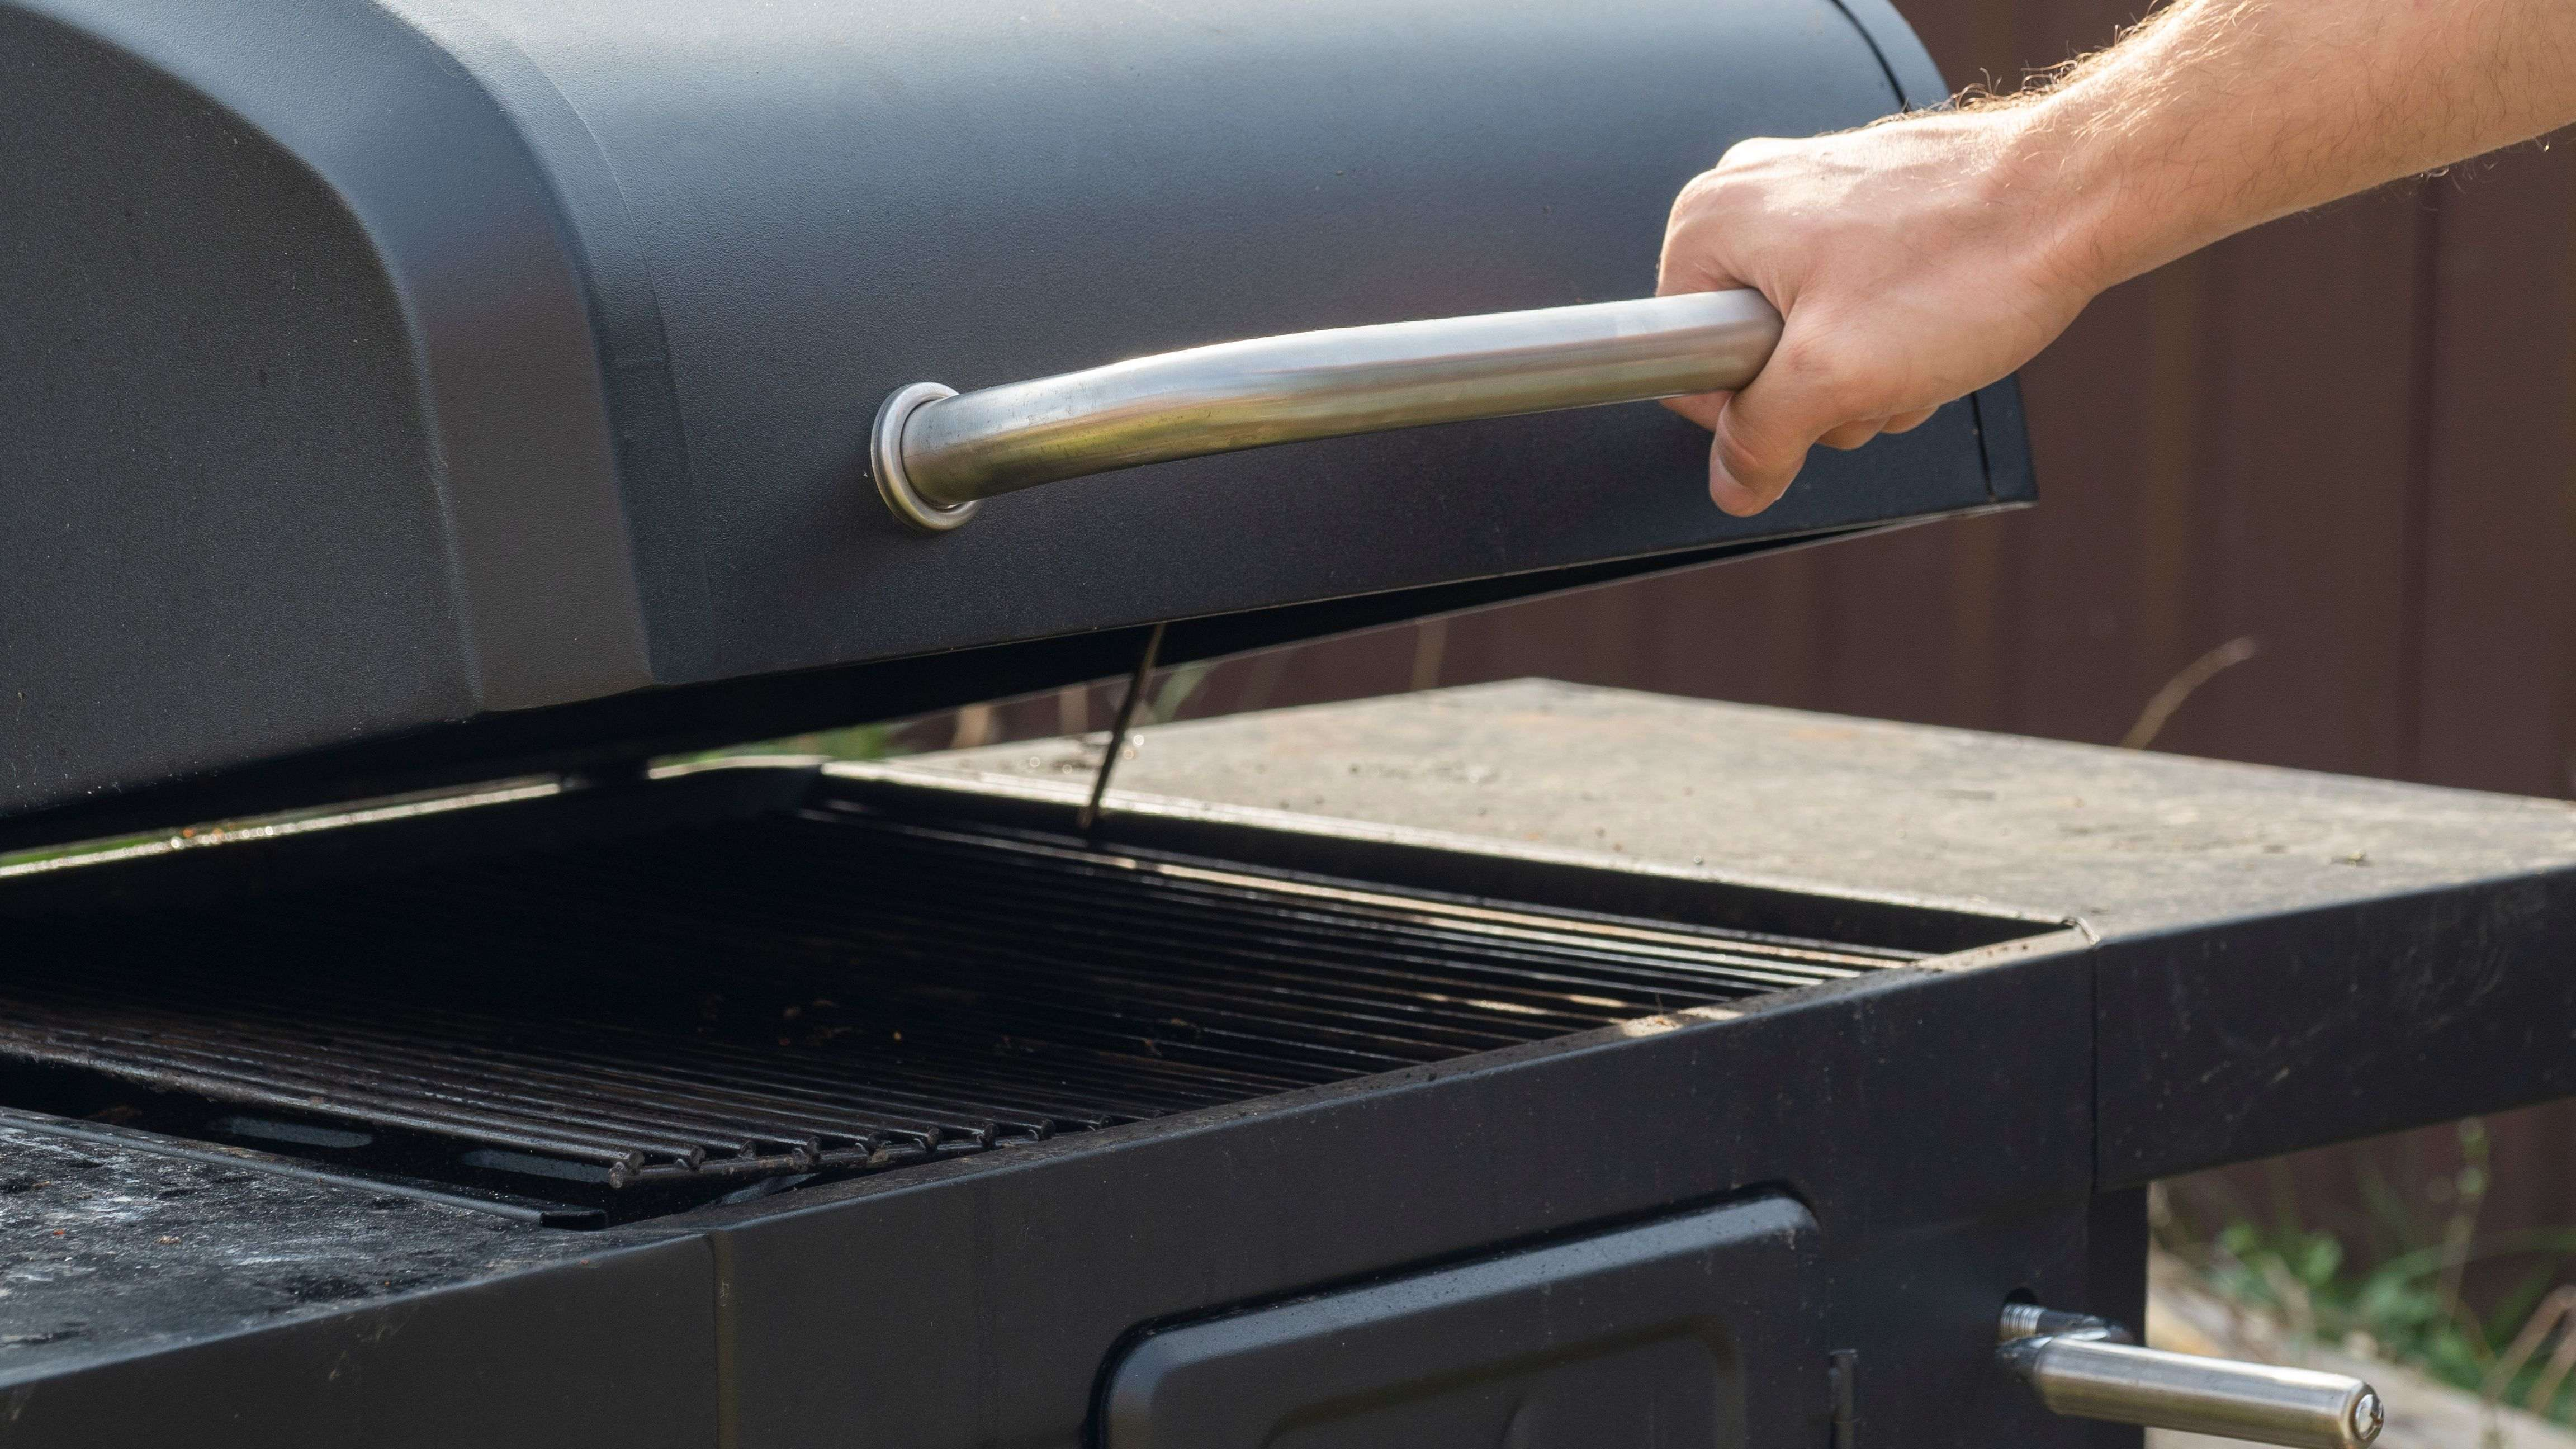 How to smoke food on the barbecue